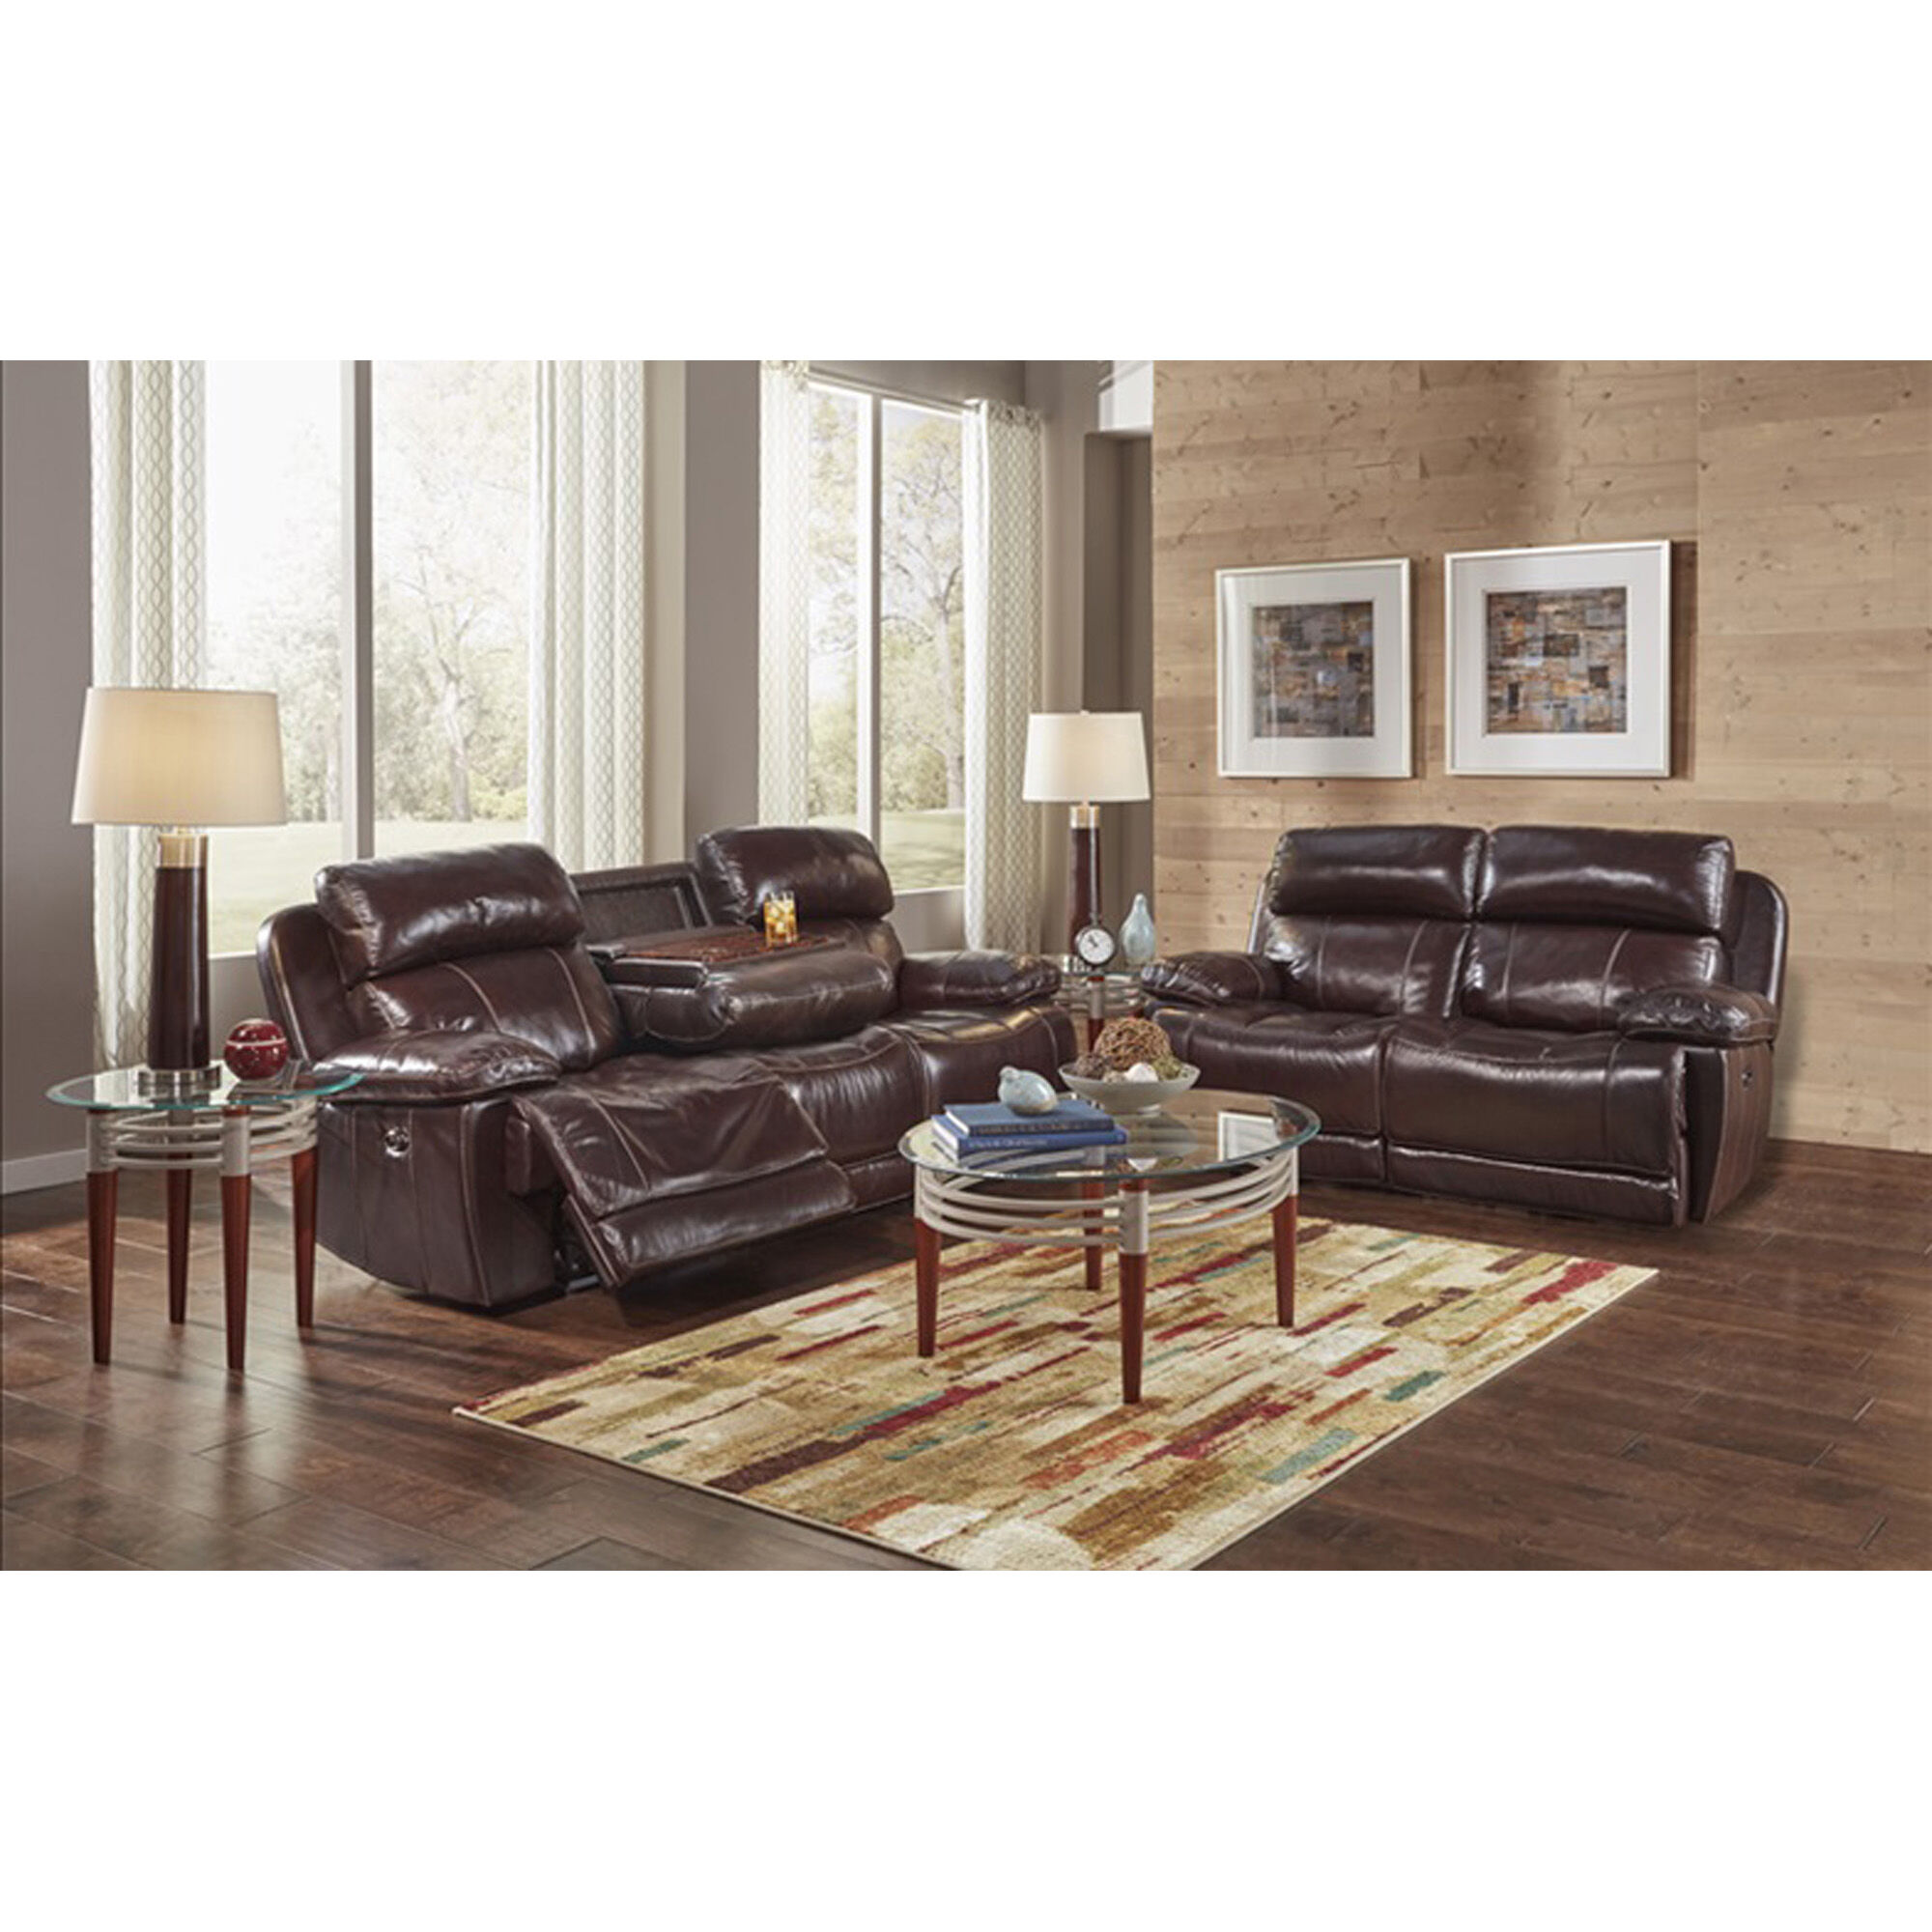 2 piece brown leather sofa clear table happy loveseat sets james reclining living room collection